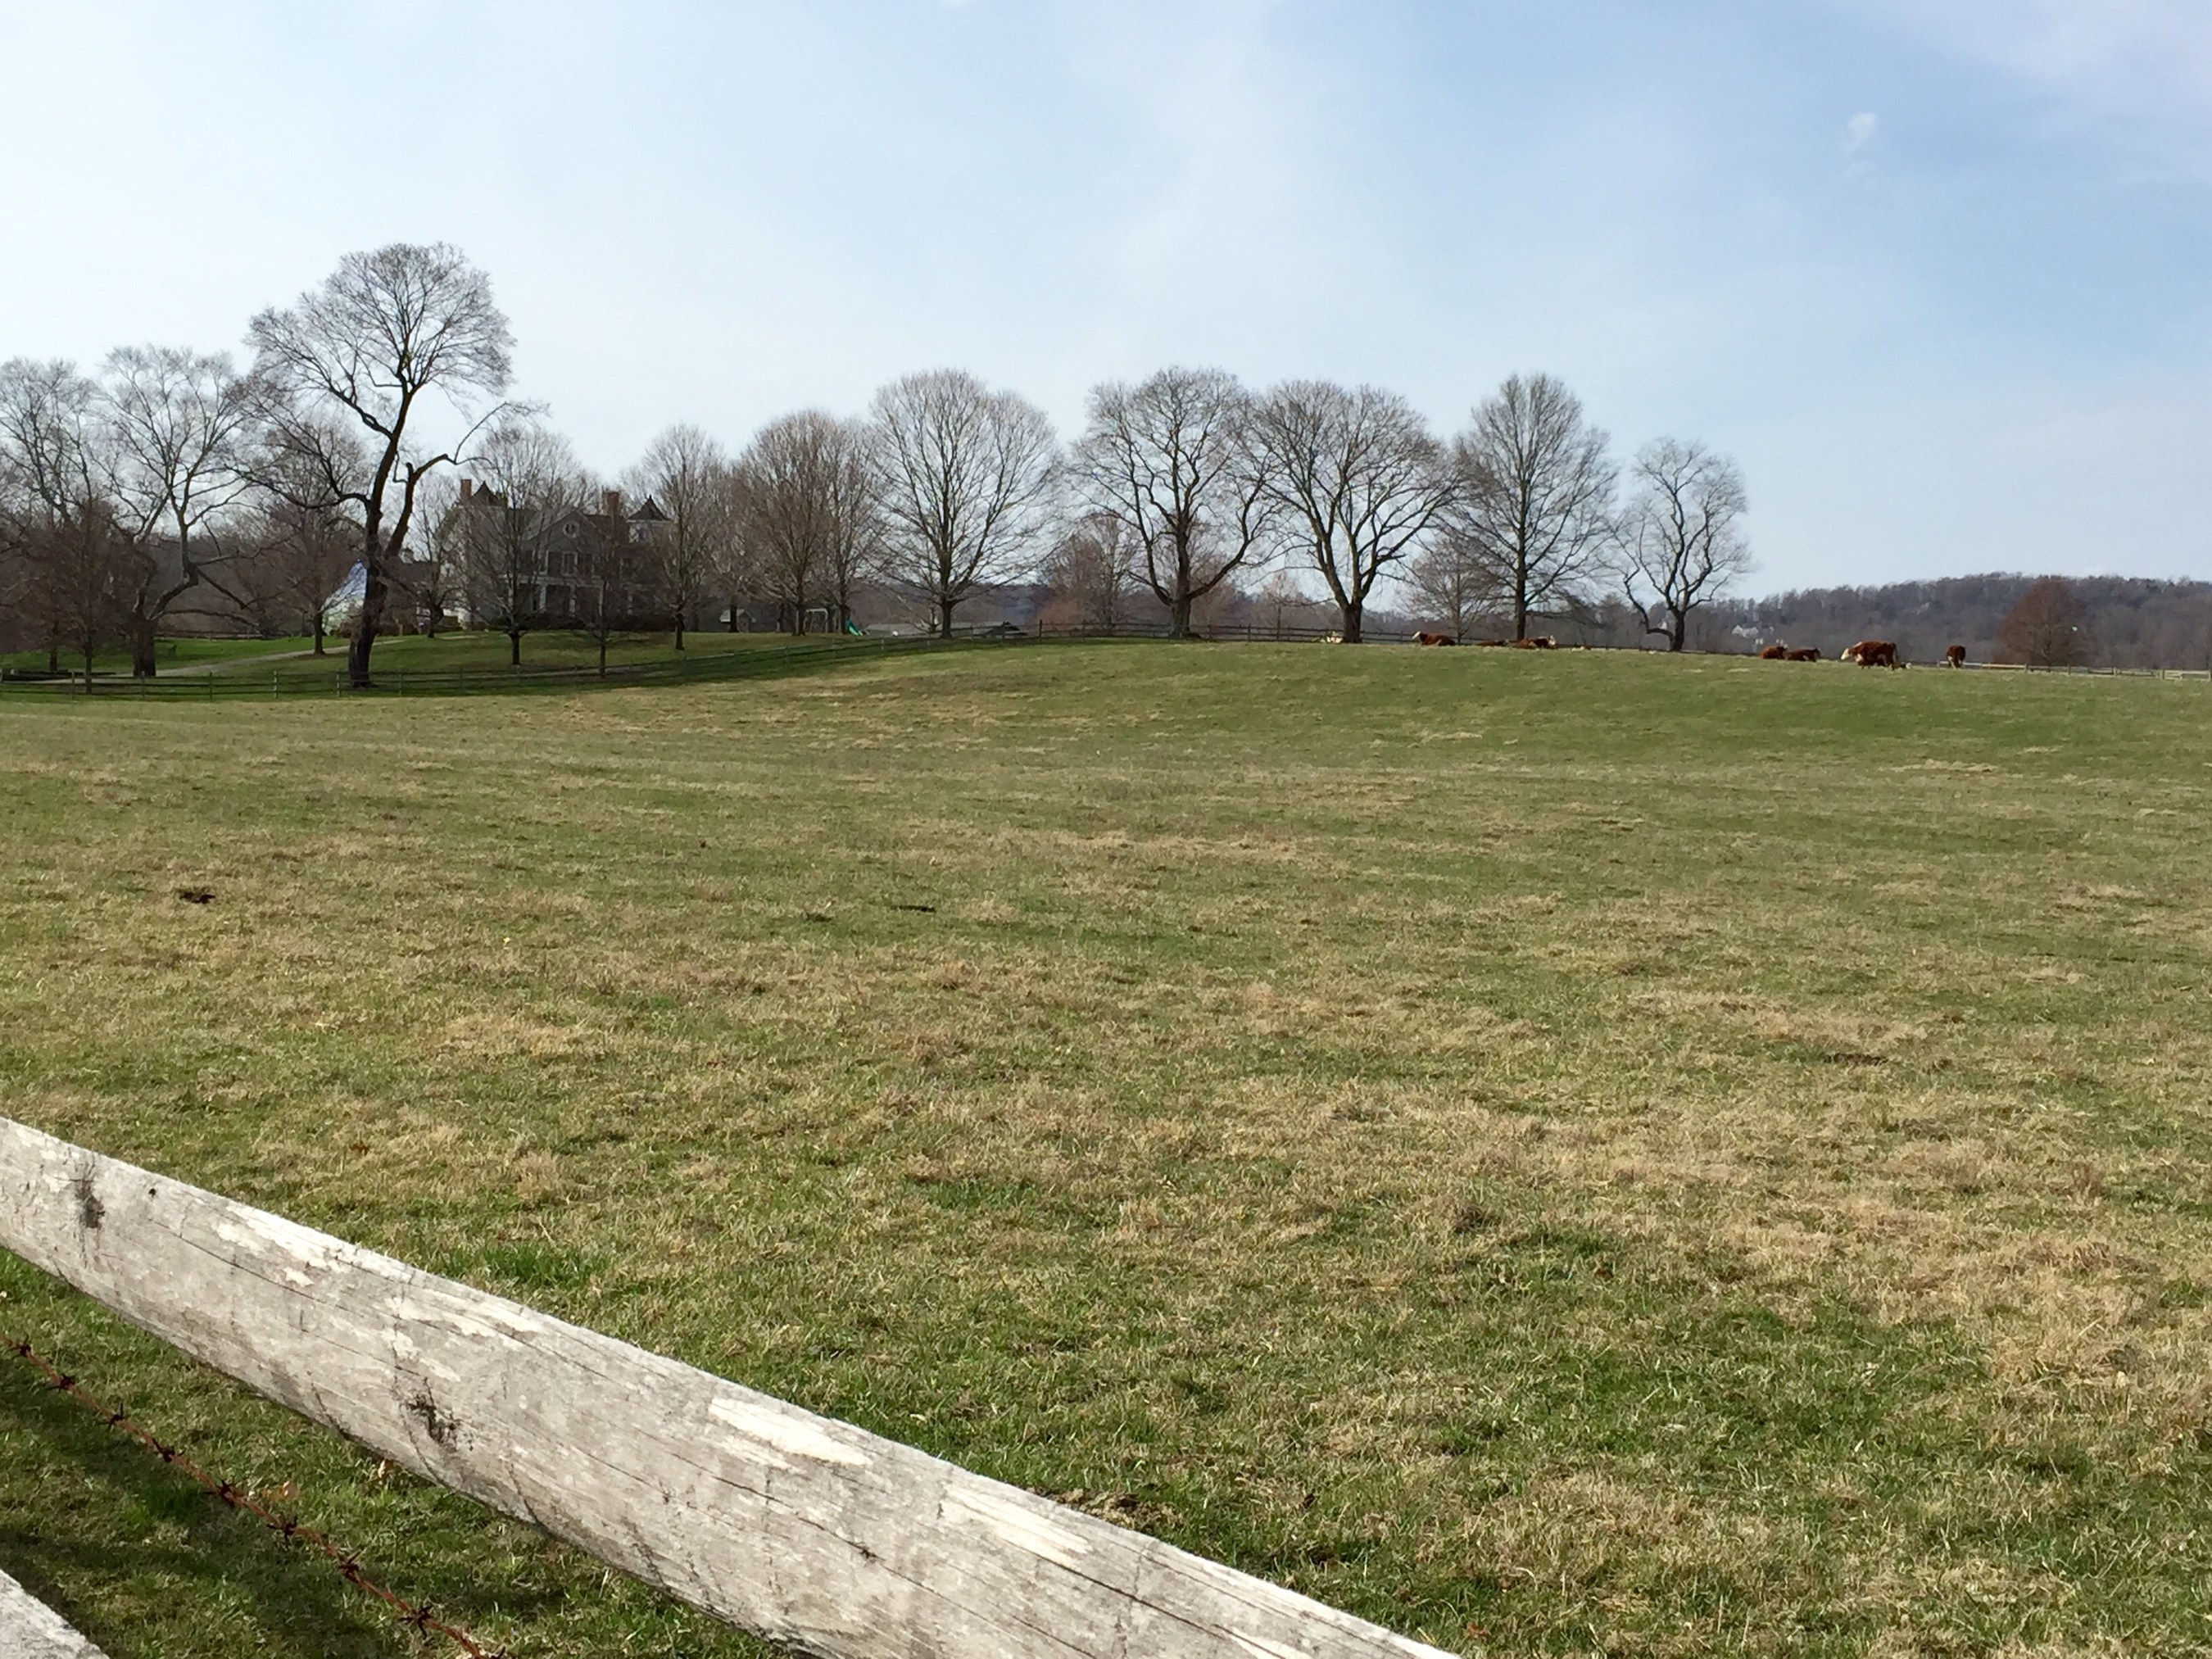 Scene of the contiguous property in Chester Township recently acquired by Gill St. Bernard's School.